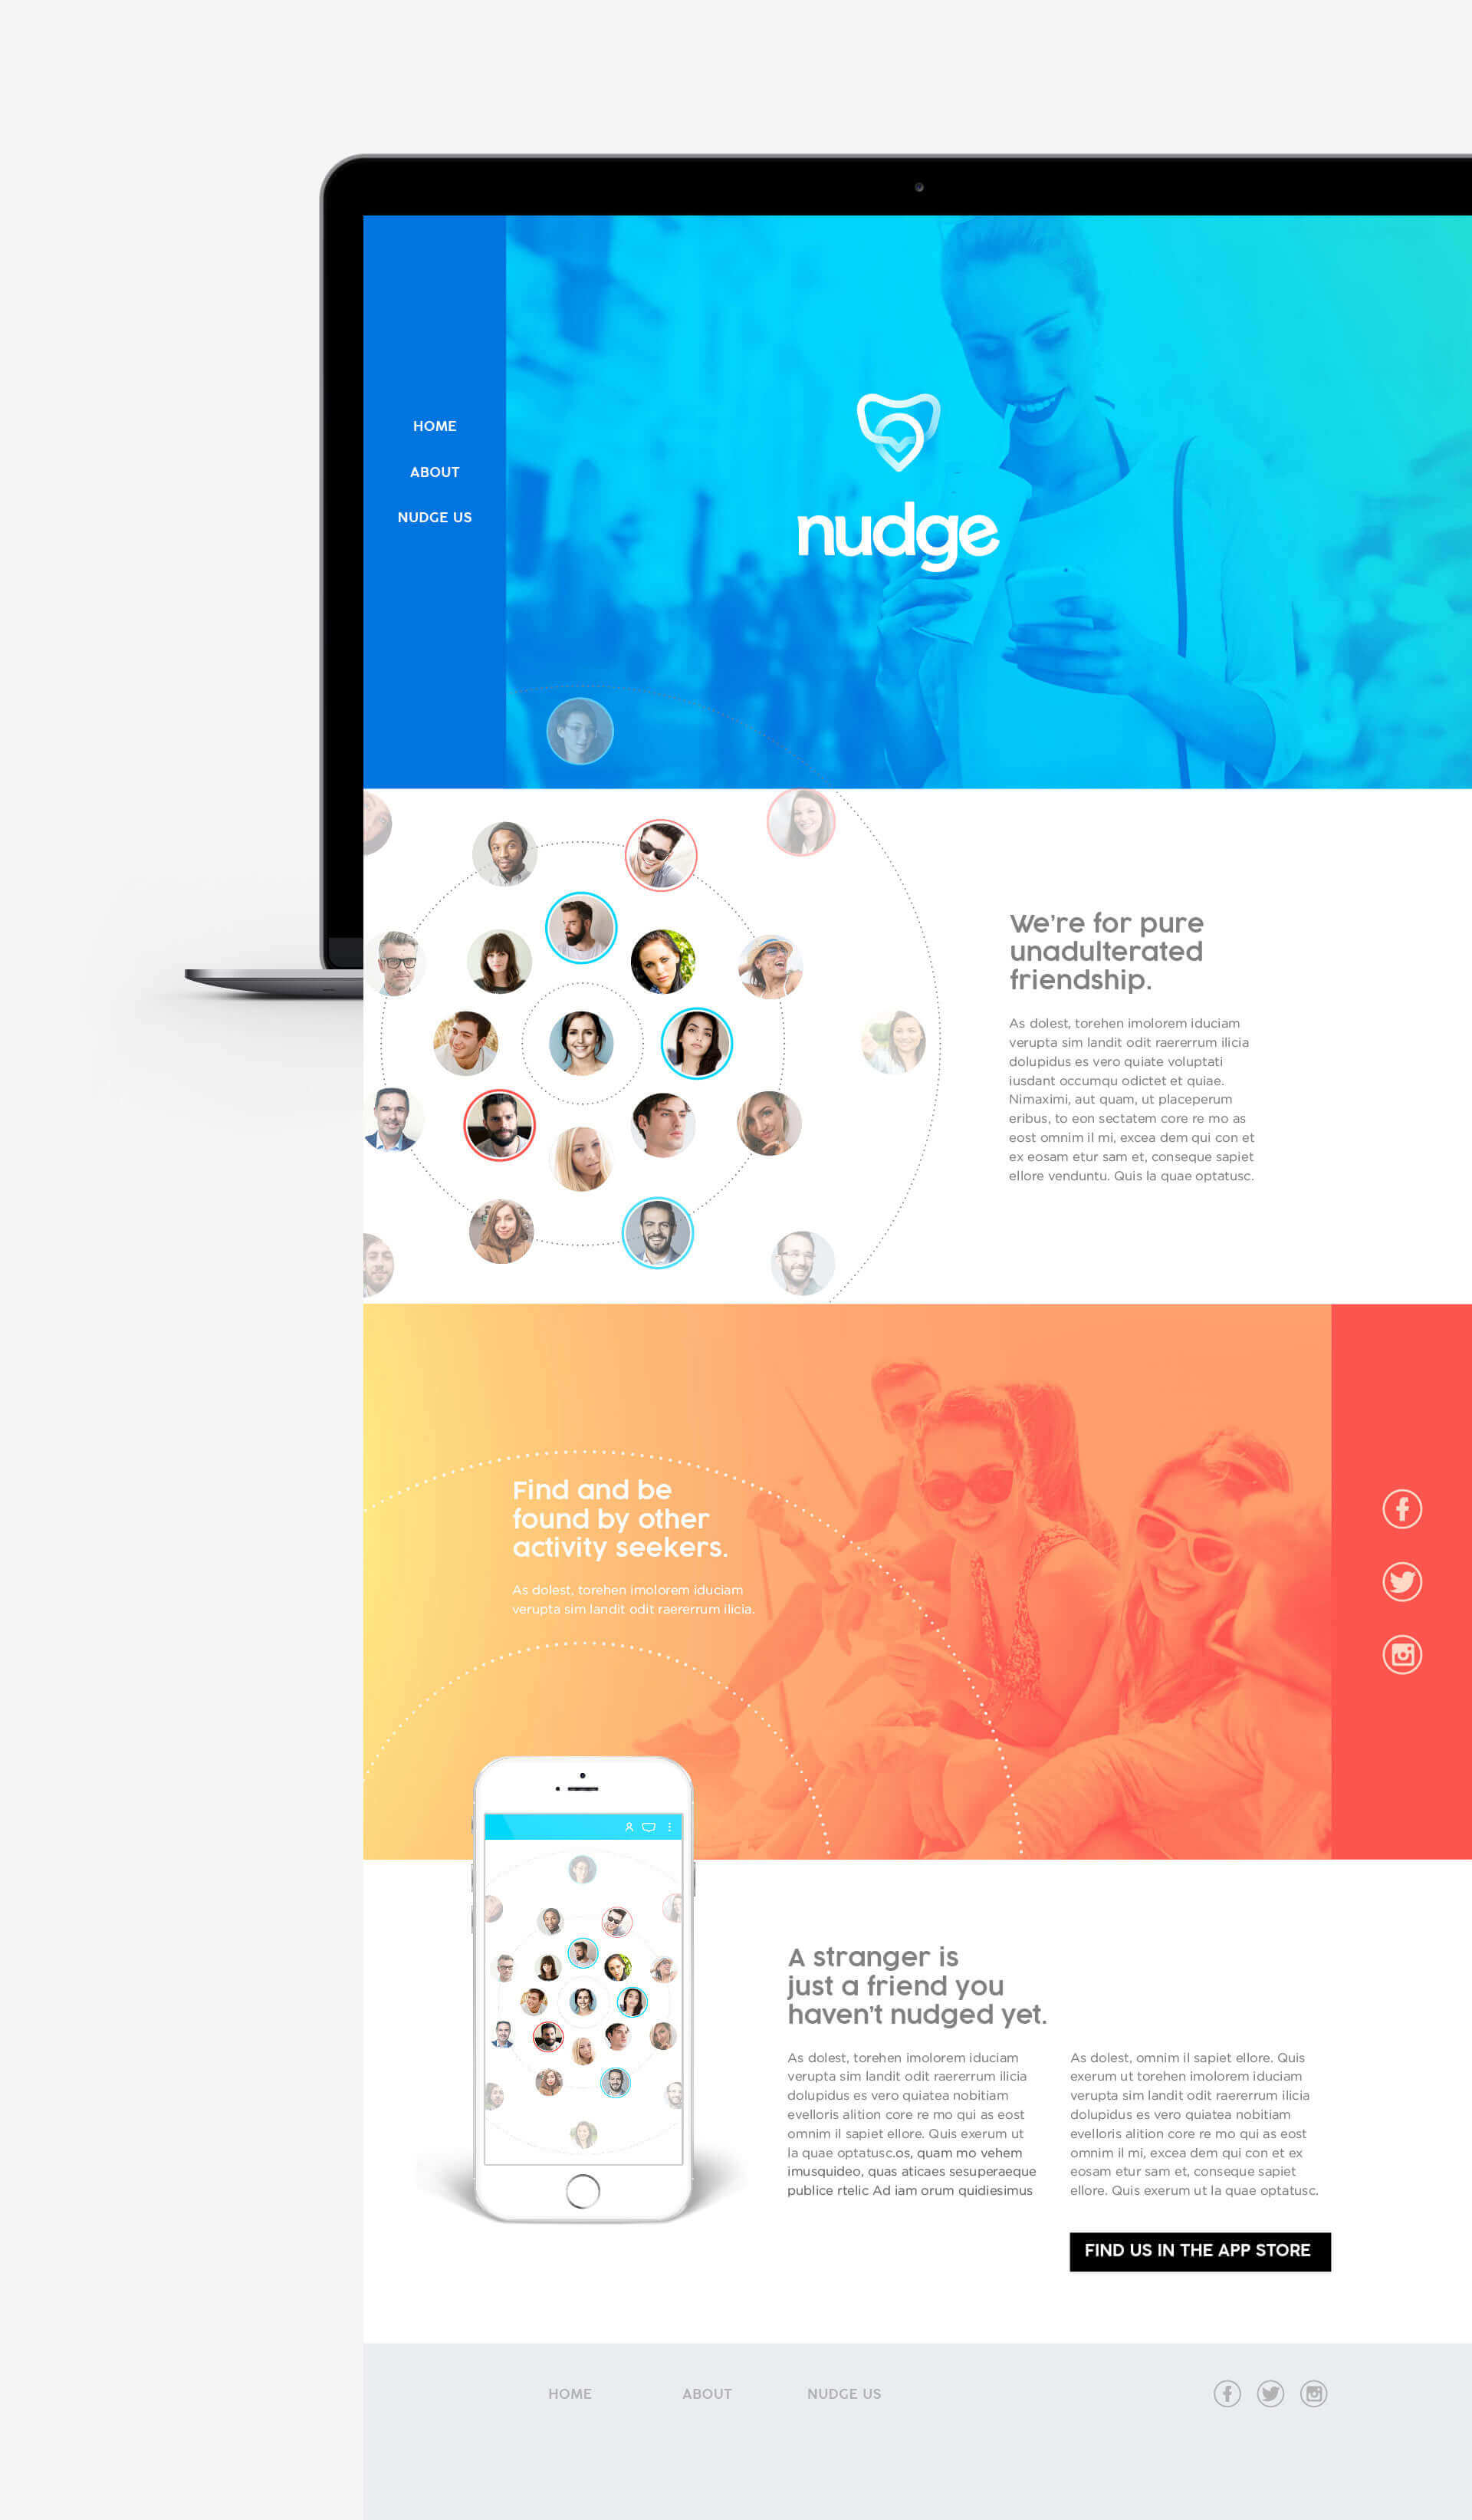 Nudge promotional website design